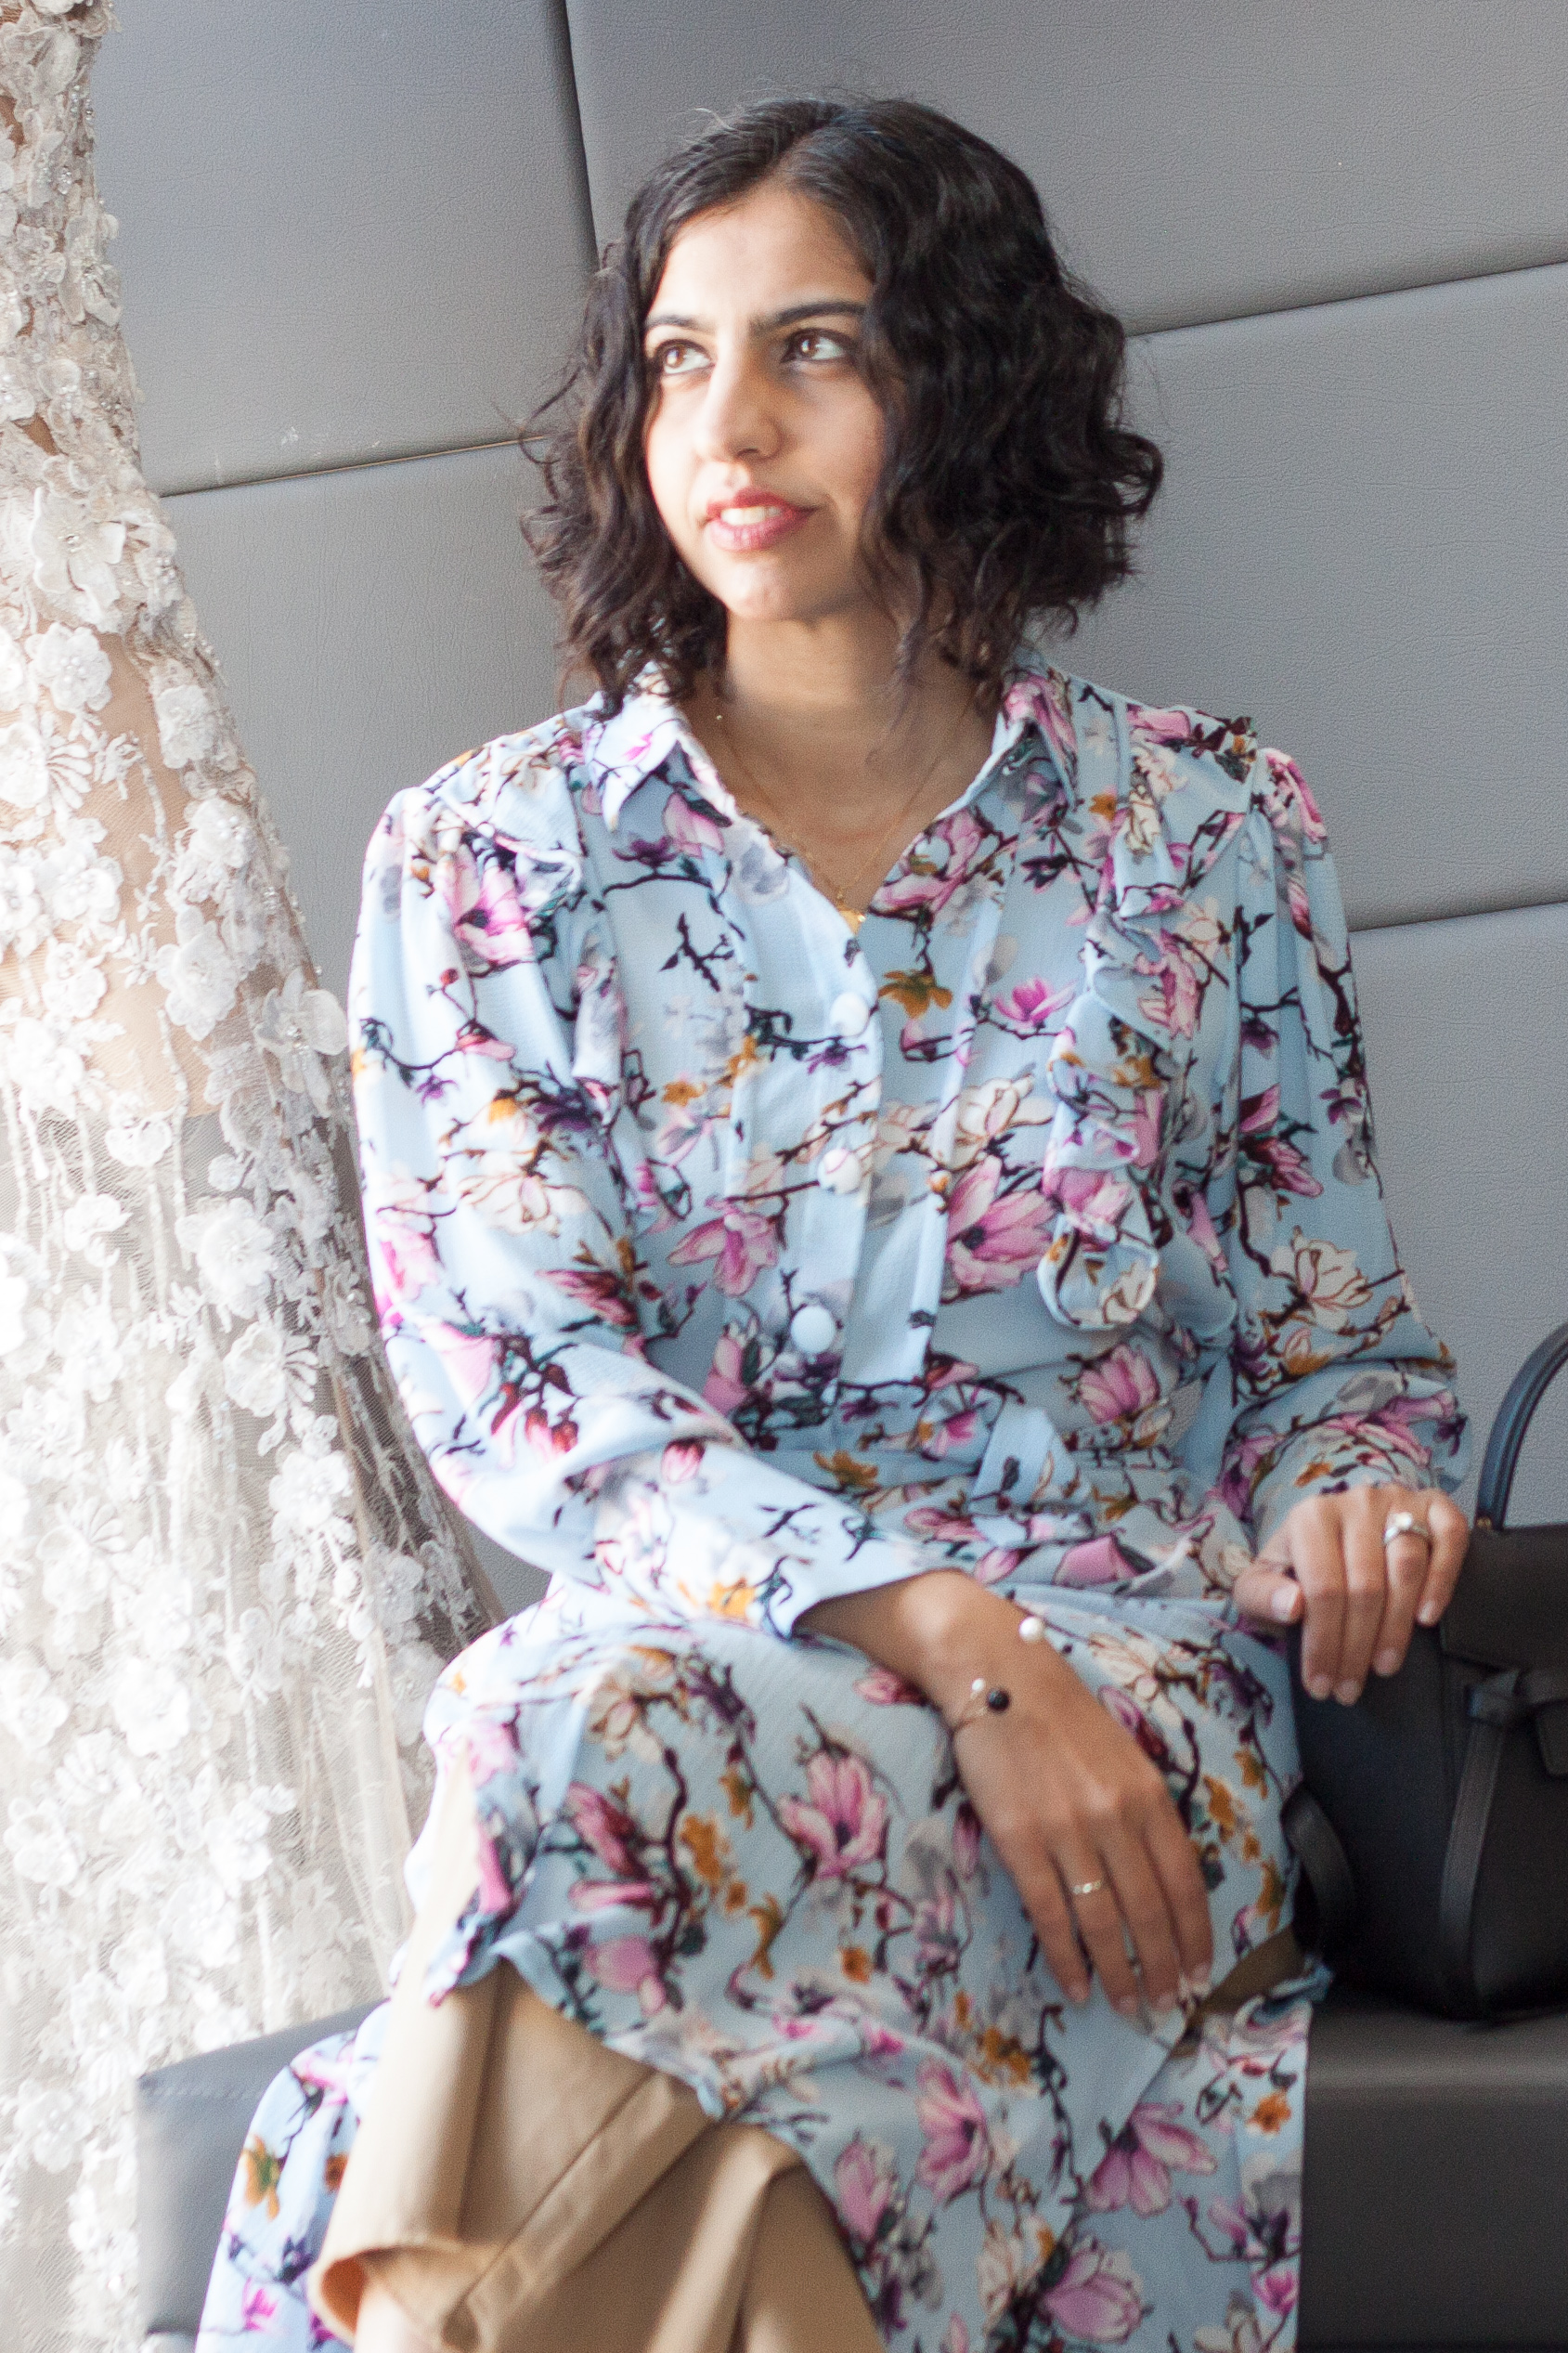 emaan qirat at the district floral shirtdress